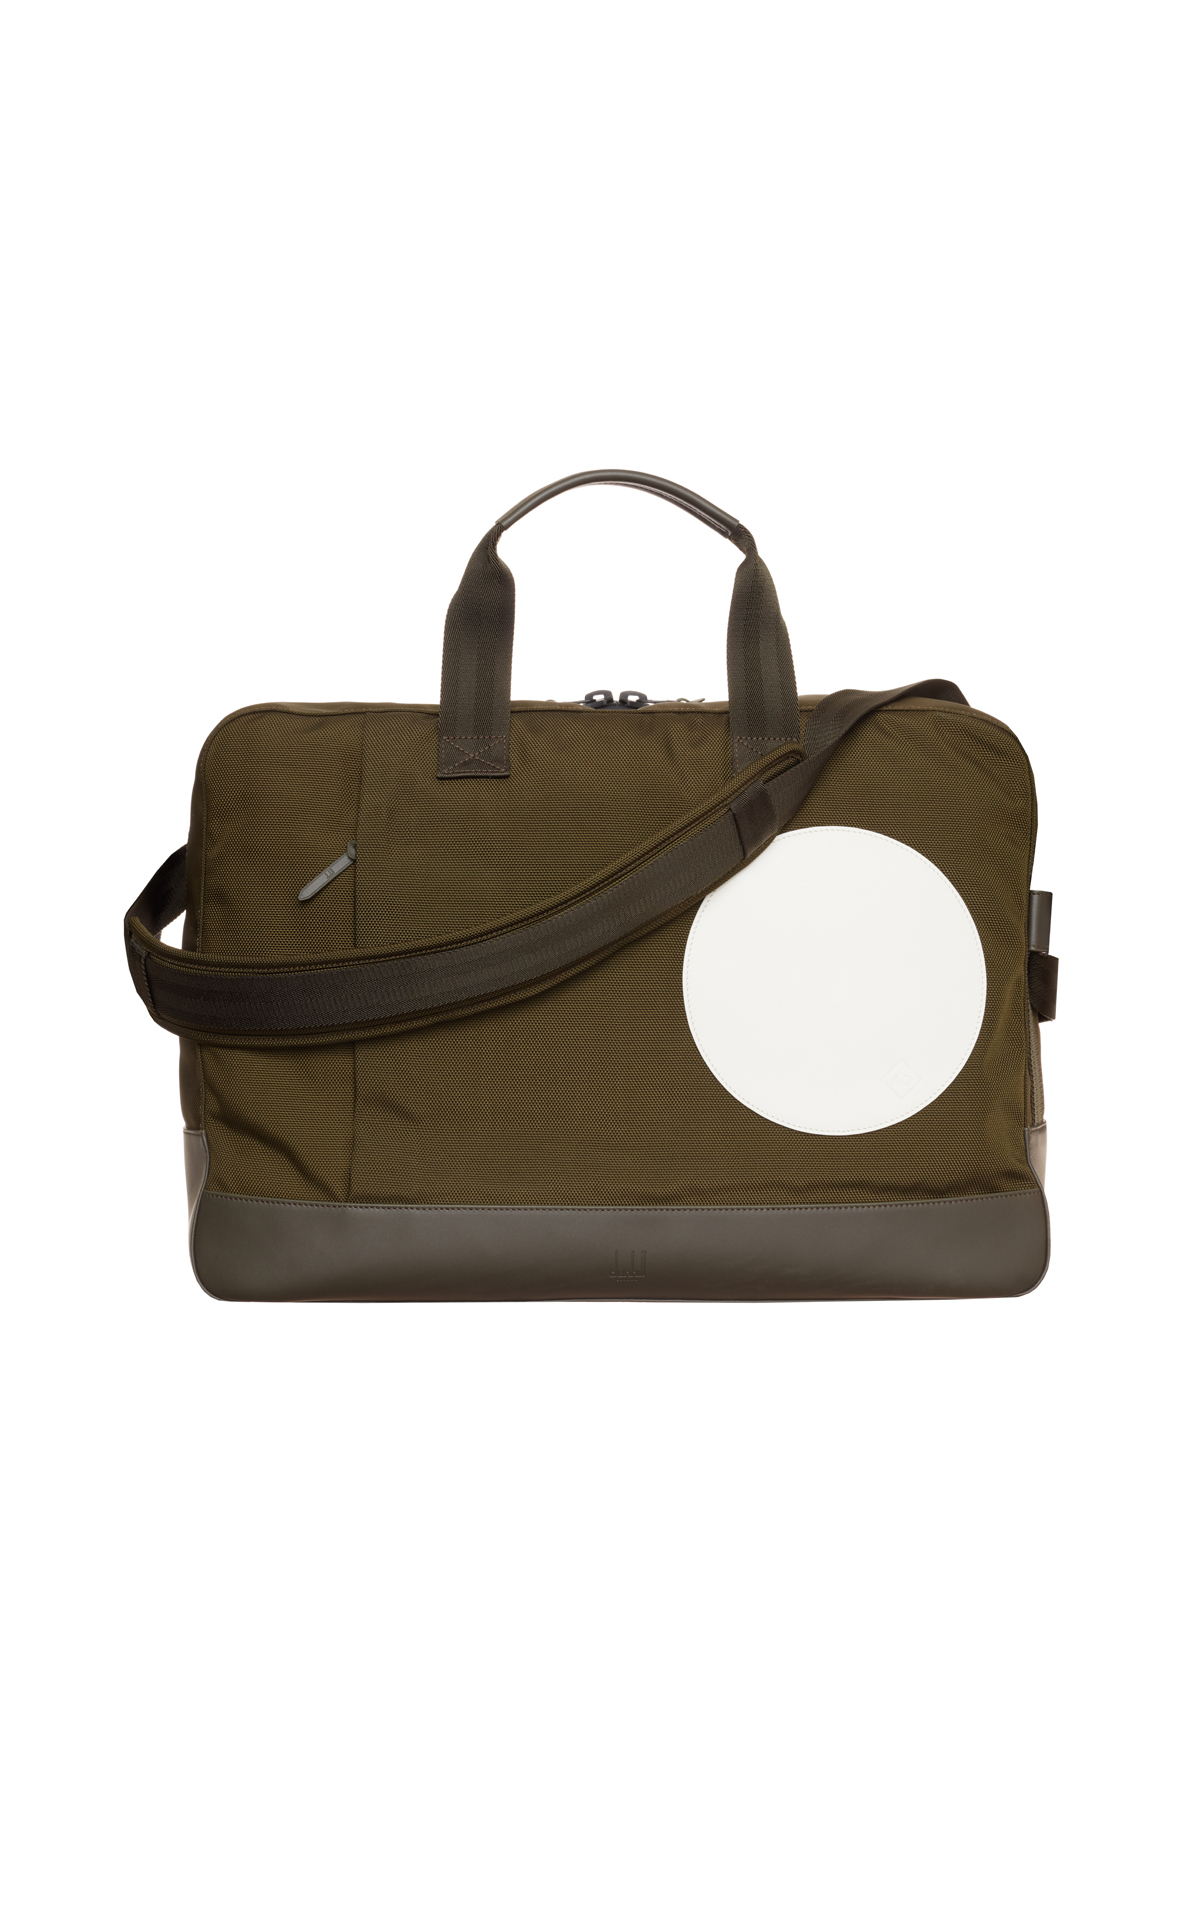 dunhill  Olive radial hold all bag from Bicester Village